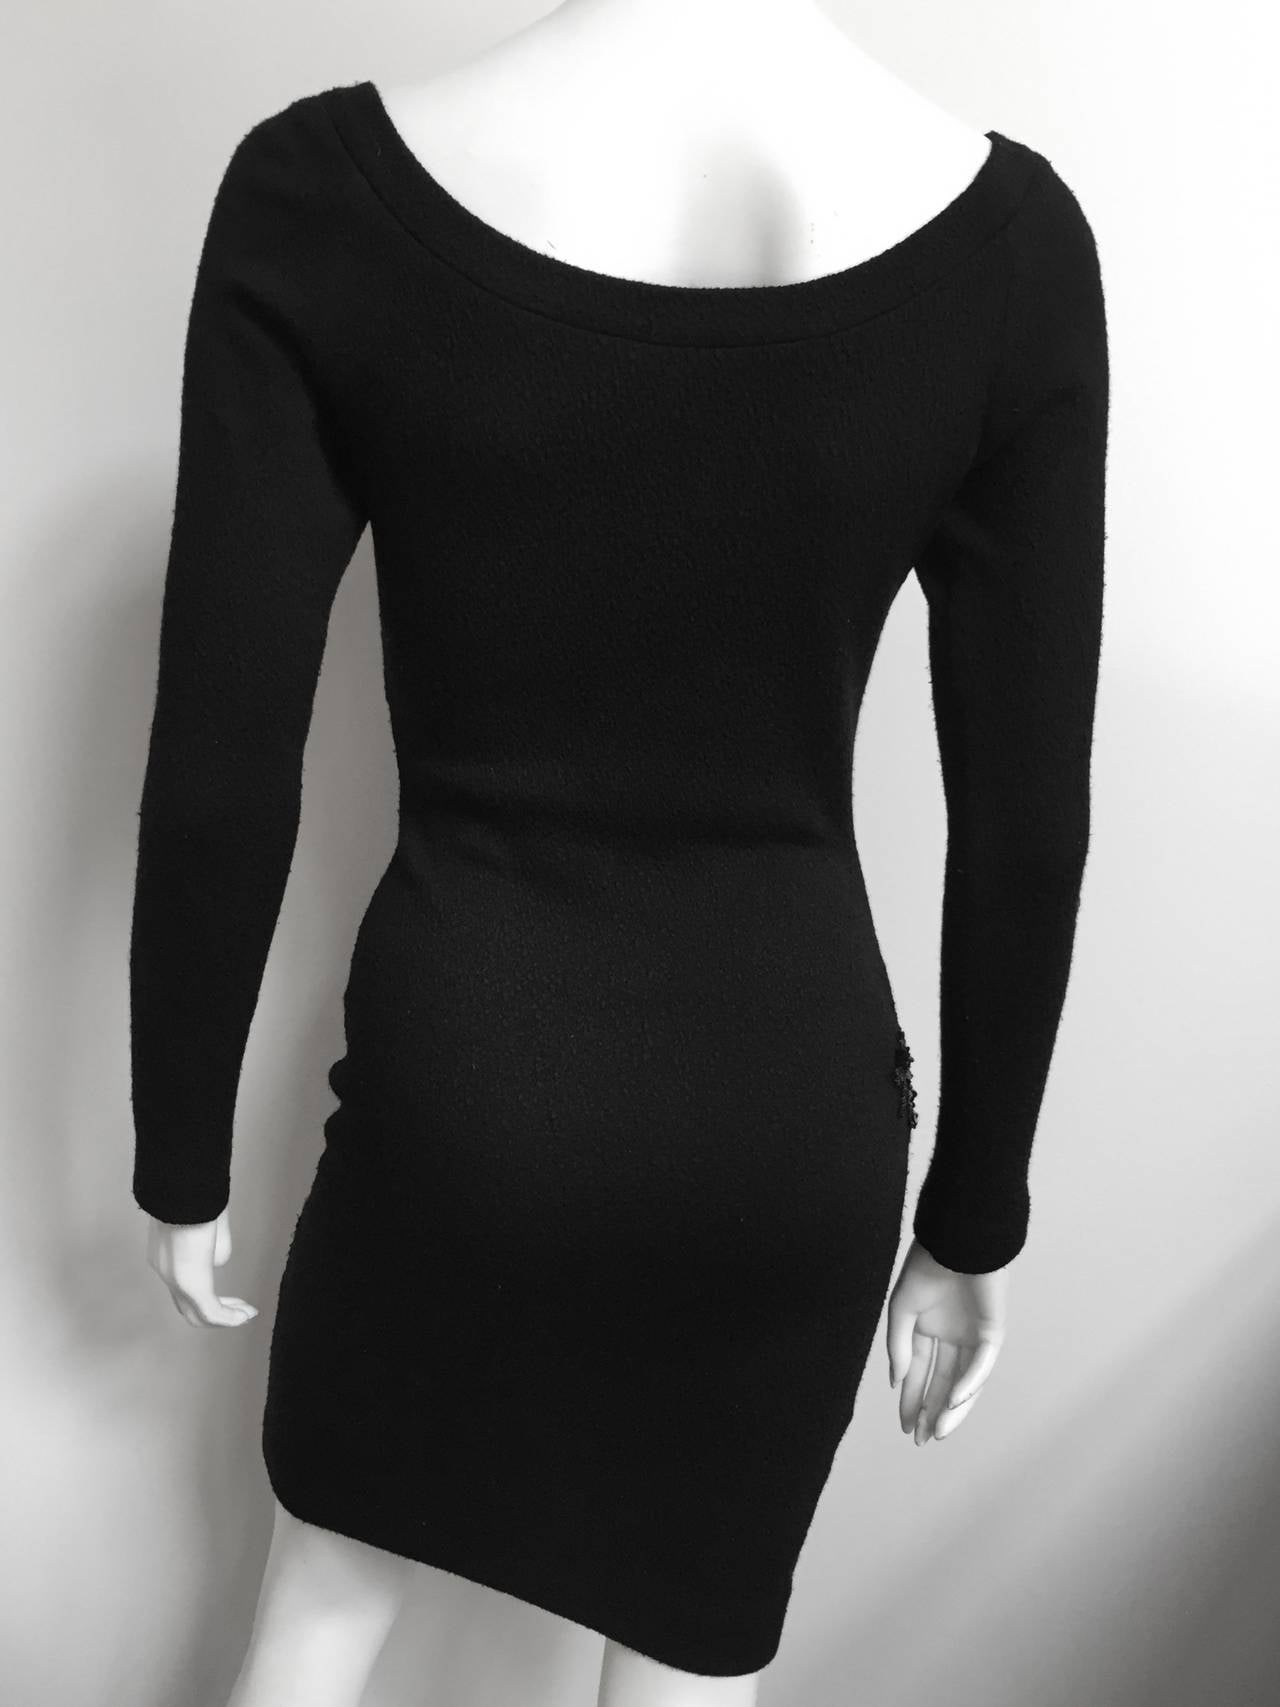 Patrick Kelly 1980s Black Evening Dress Size Small. 6